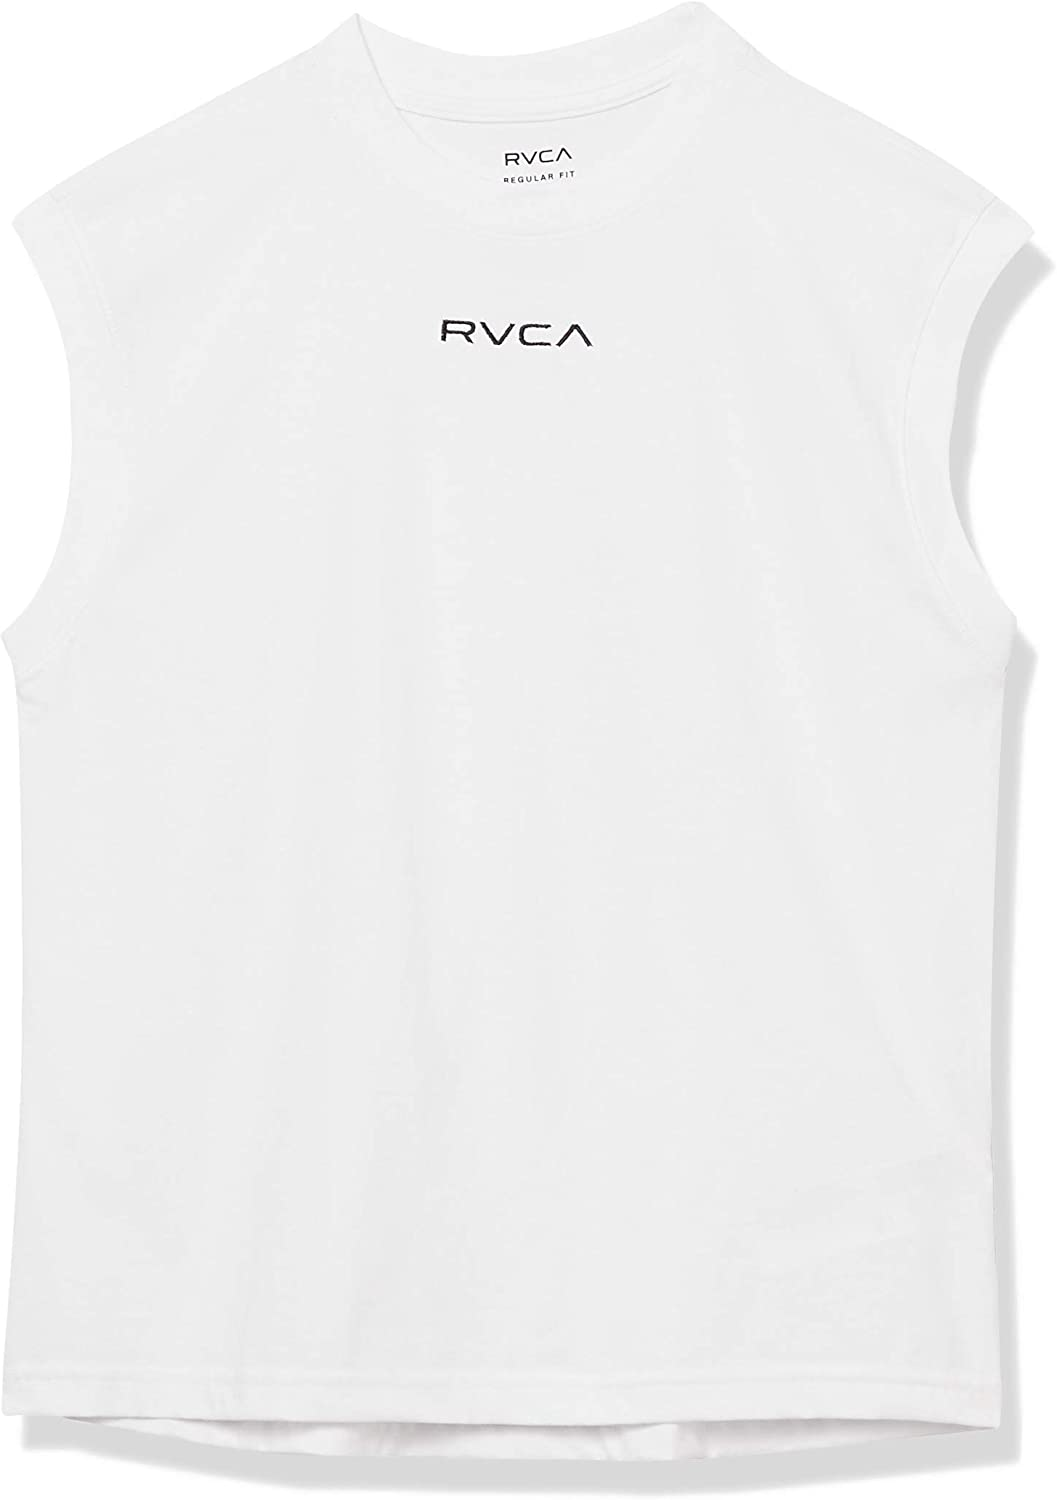 RVCA Women's Graphic Muscle Crew Neck T-Shirt